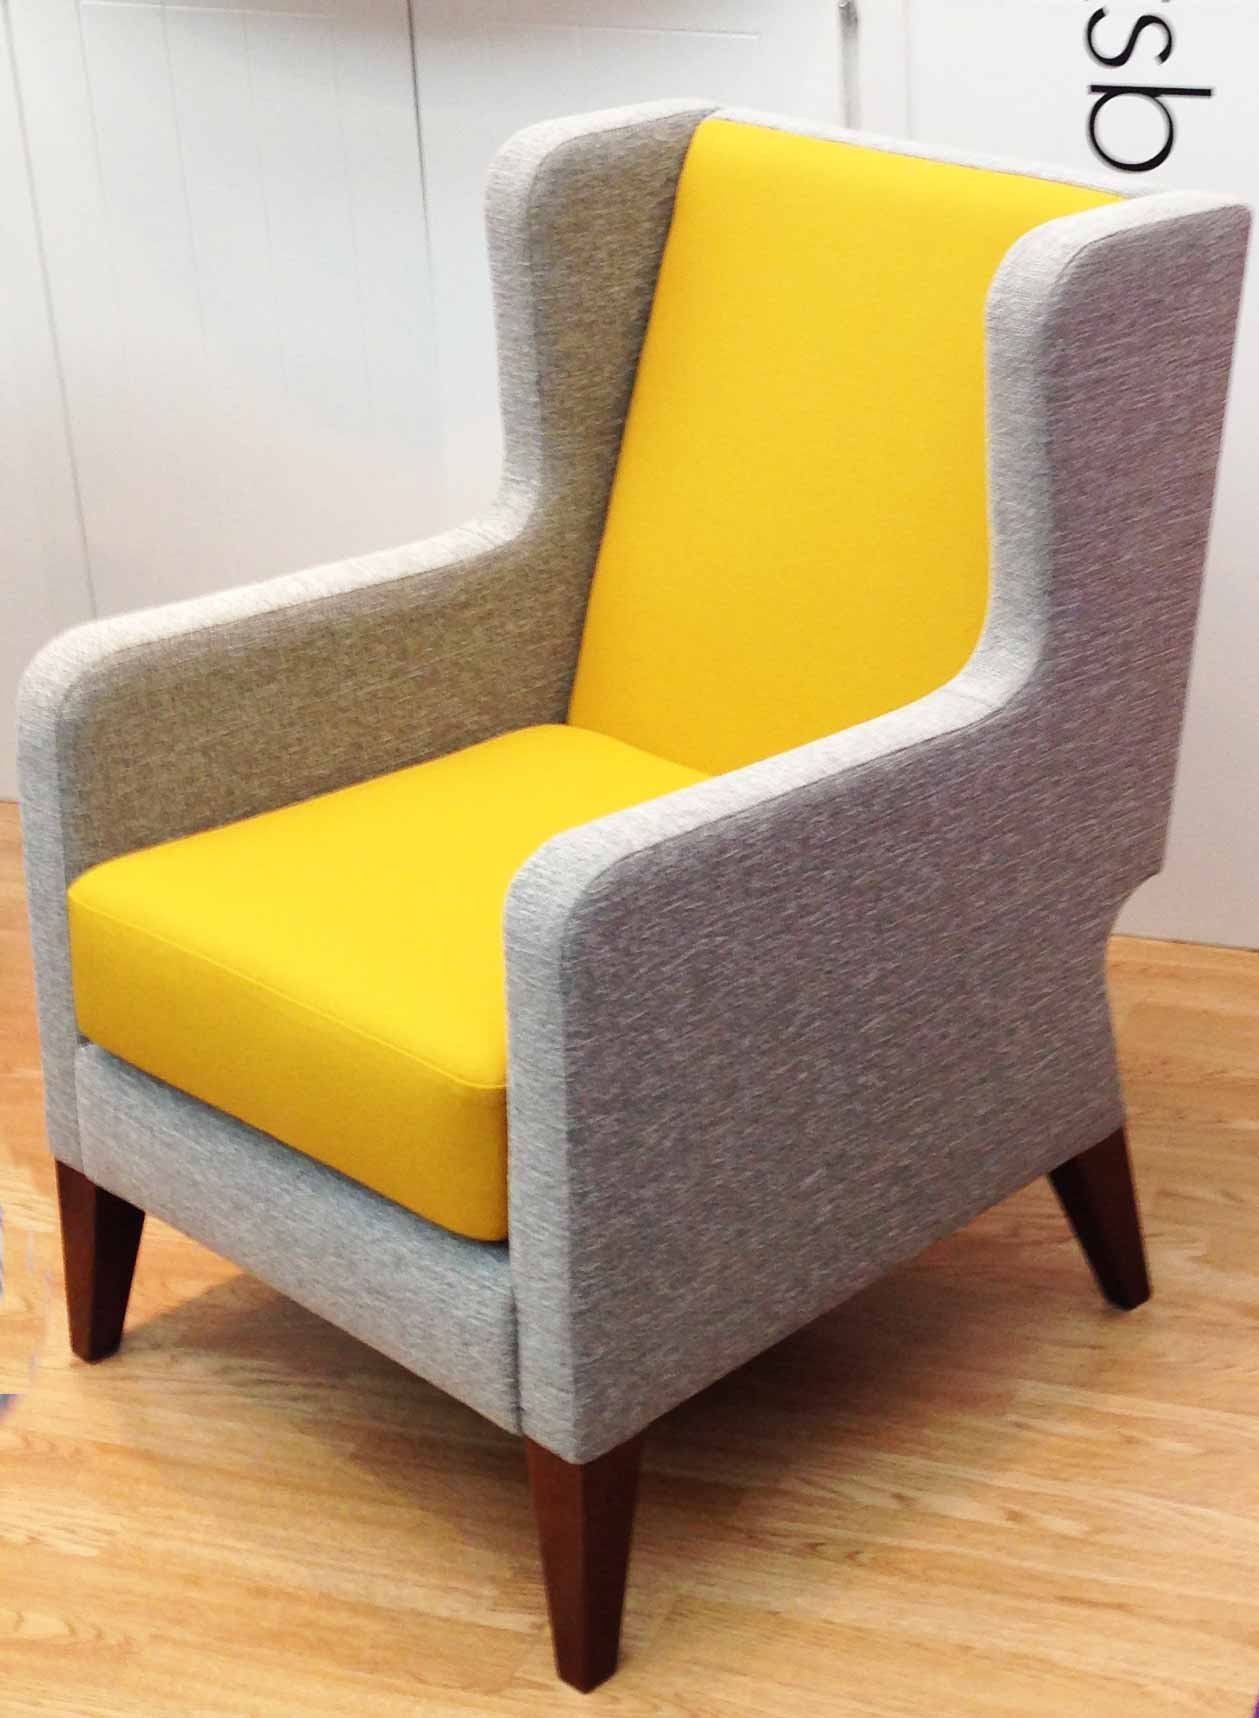 Yellow And Grey Chair Winda 7 Furniture